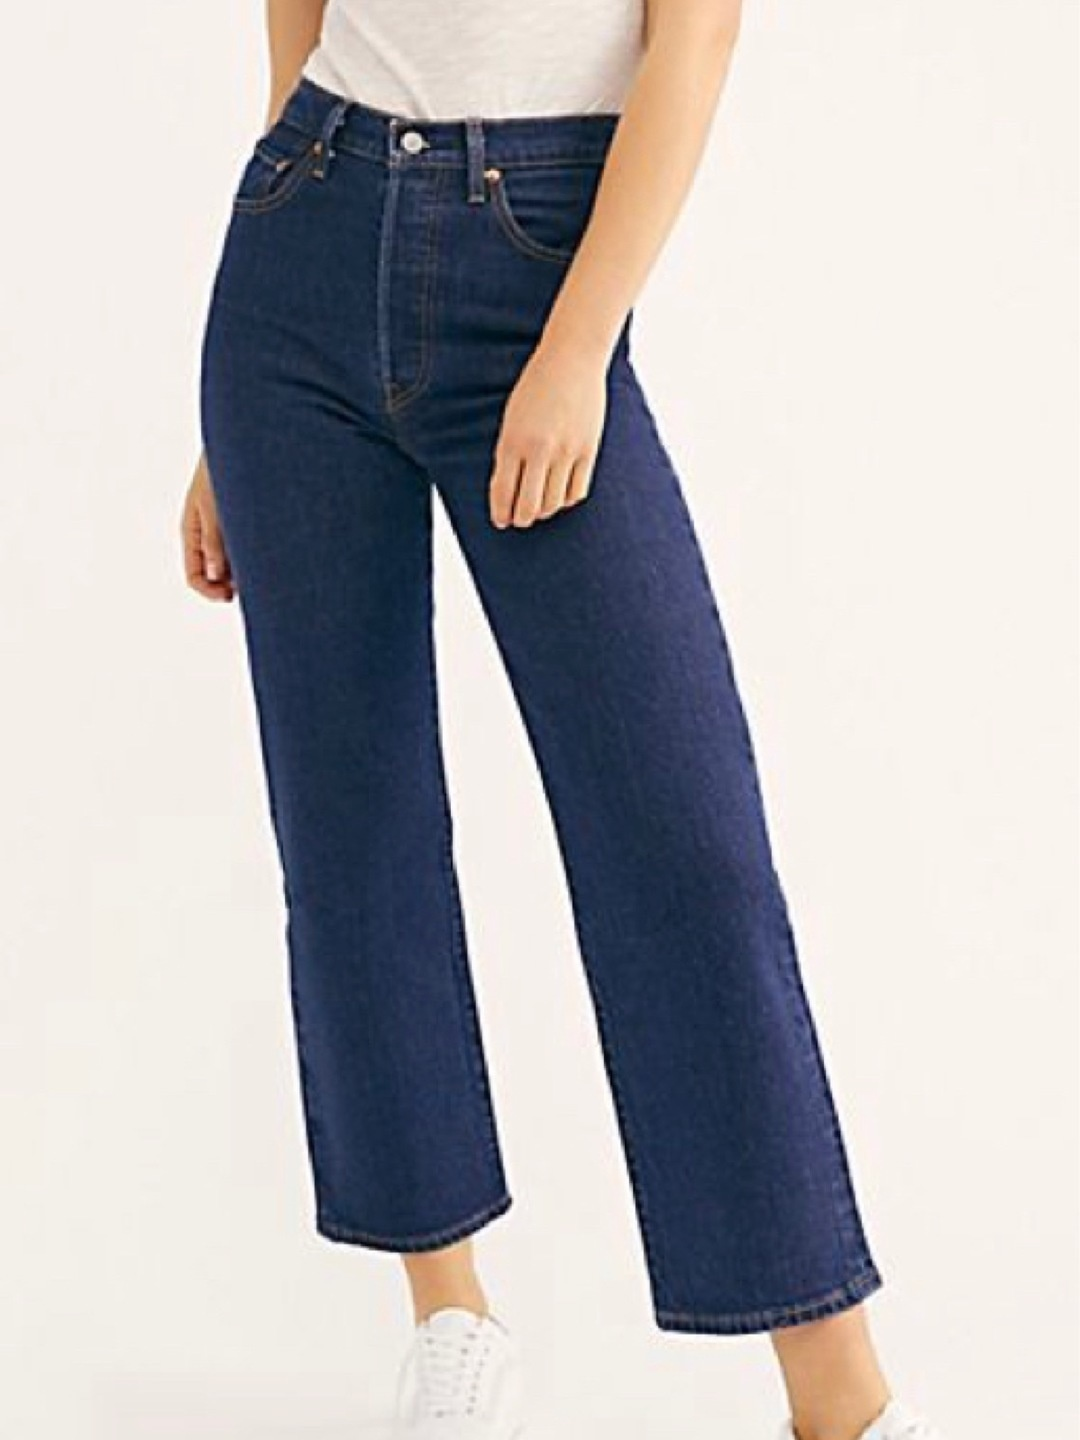 Women's trousers & jeans - LEVI'S photo 4